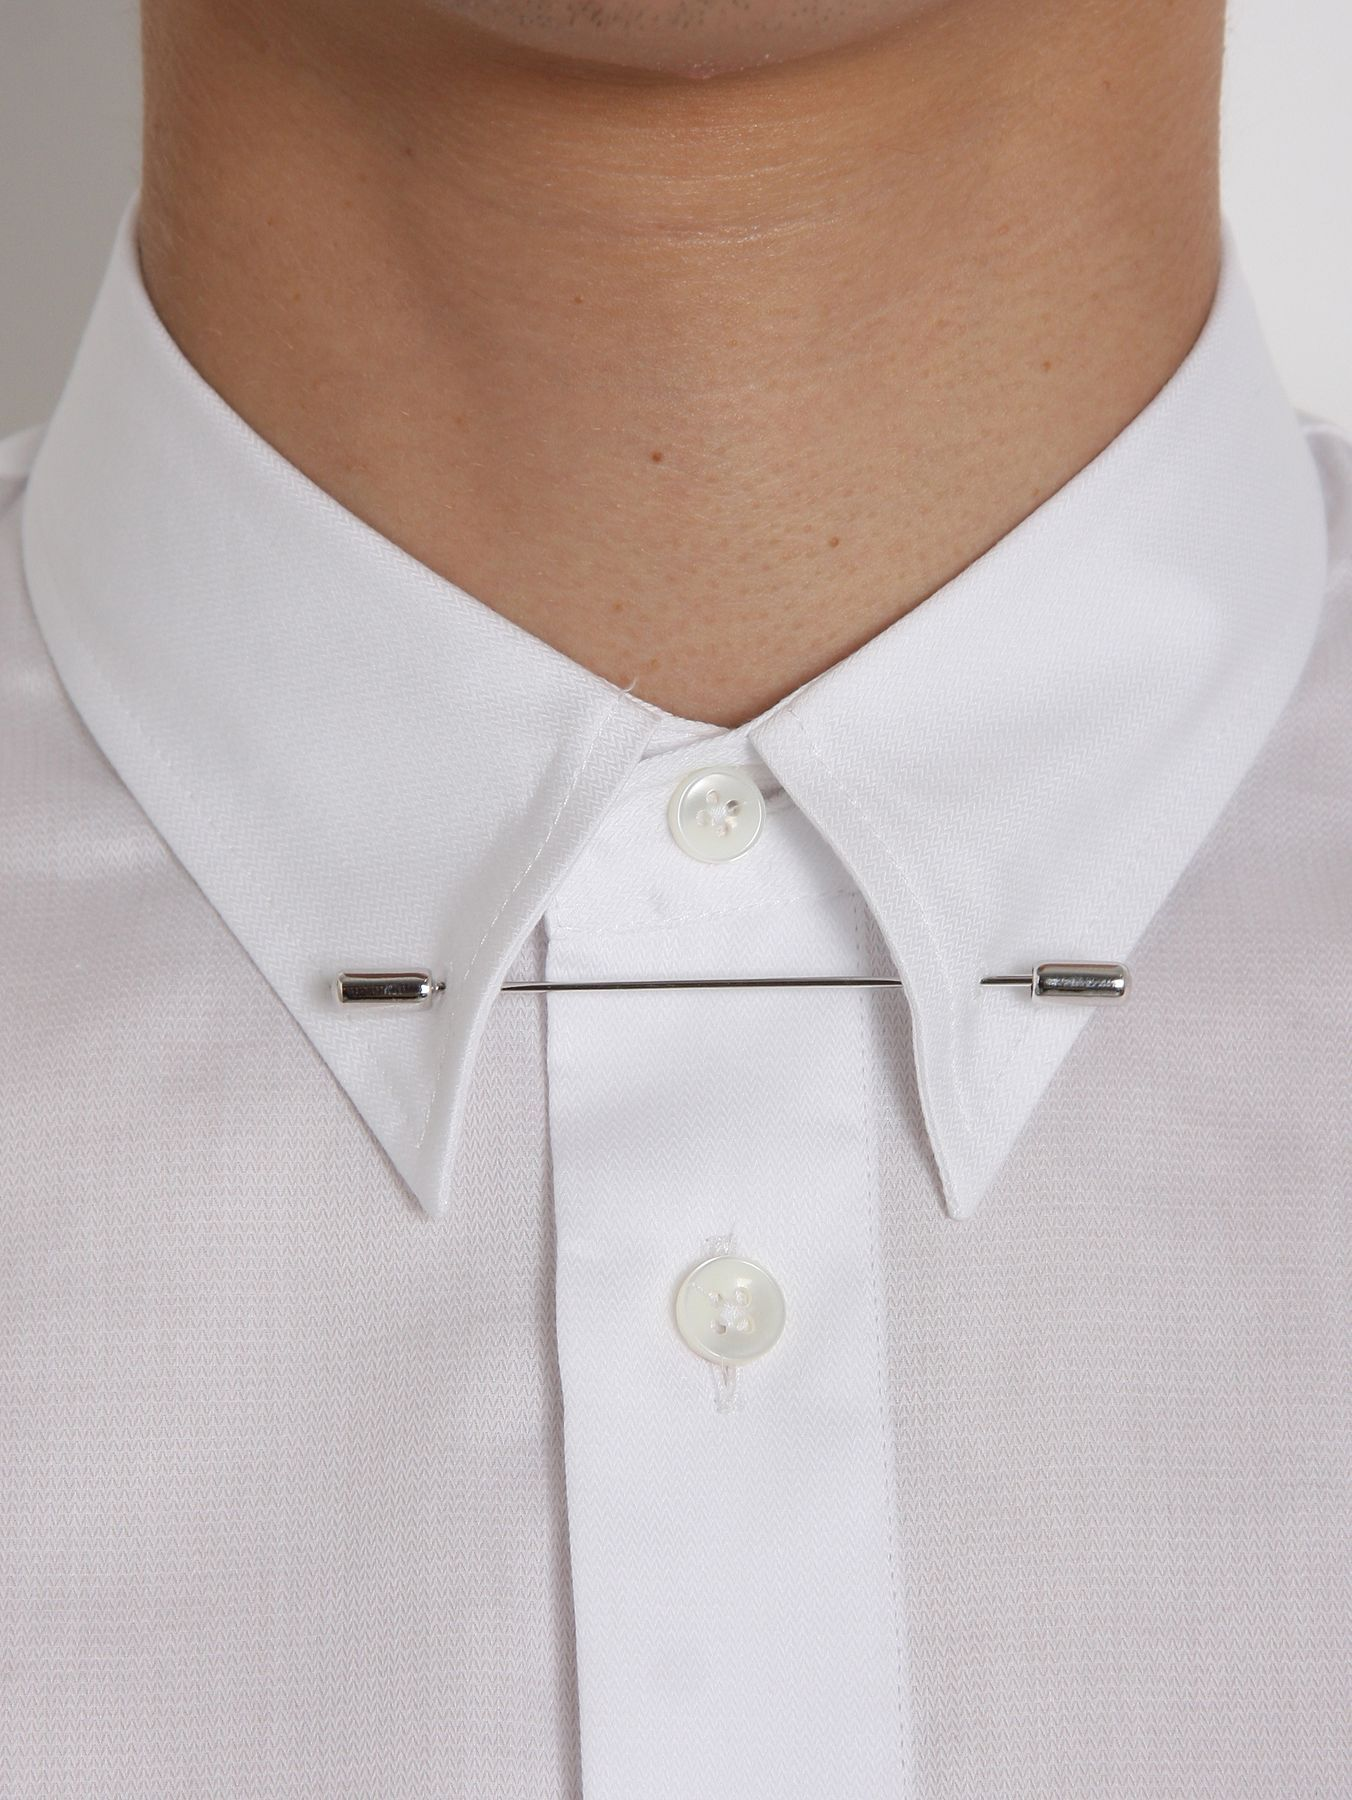 Pin By Tyrone Timmsa On Stuff To Buy Collar Shirts Collars Mens